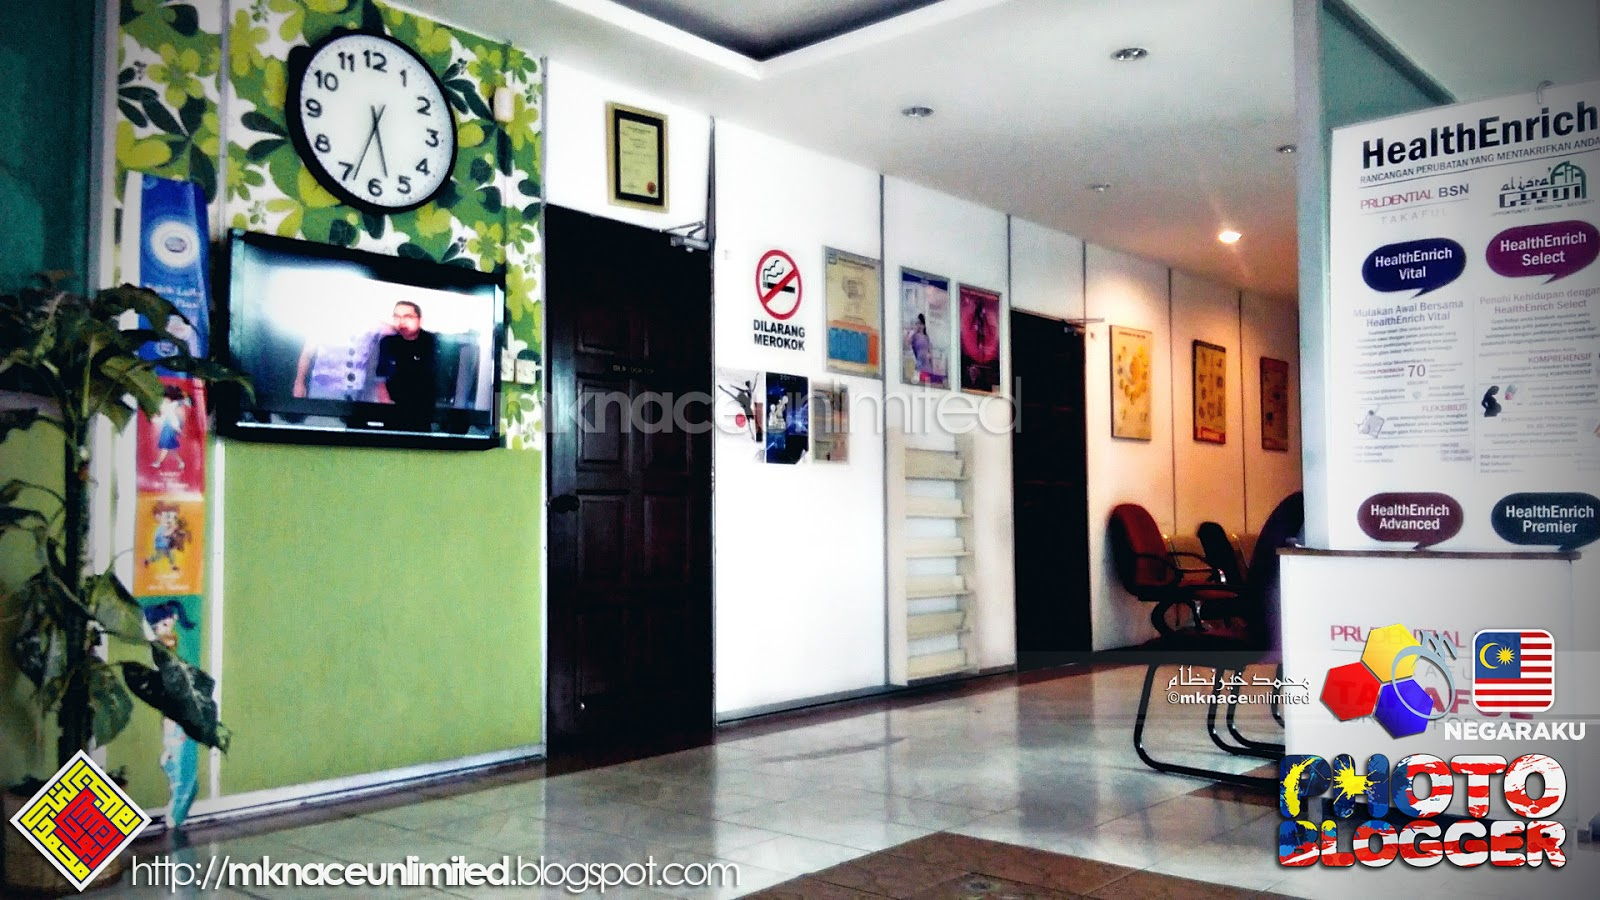 Poliklinik Bio Sucinas A Check Up Mknace Unlimited The Colours Tcash Vaganza 32 Milo Malaysia Activ Go Running Number